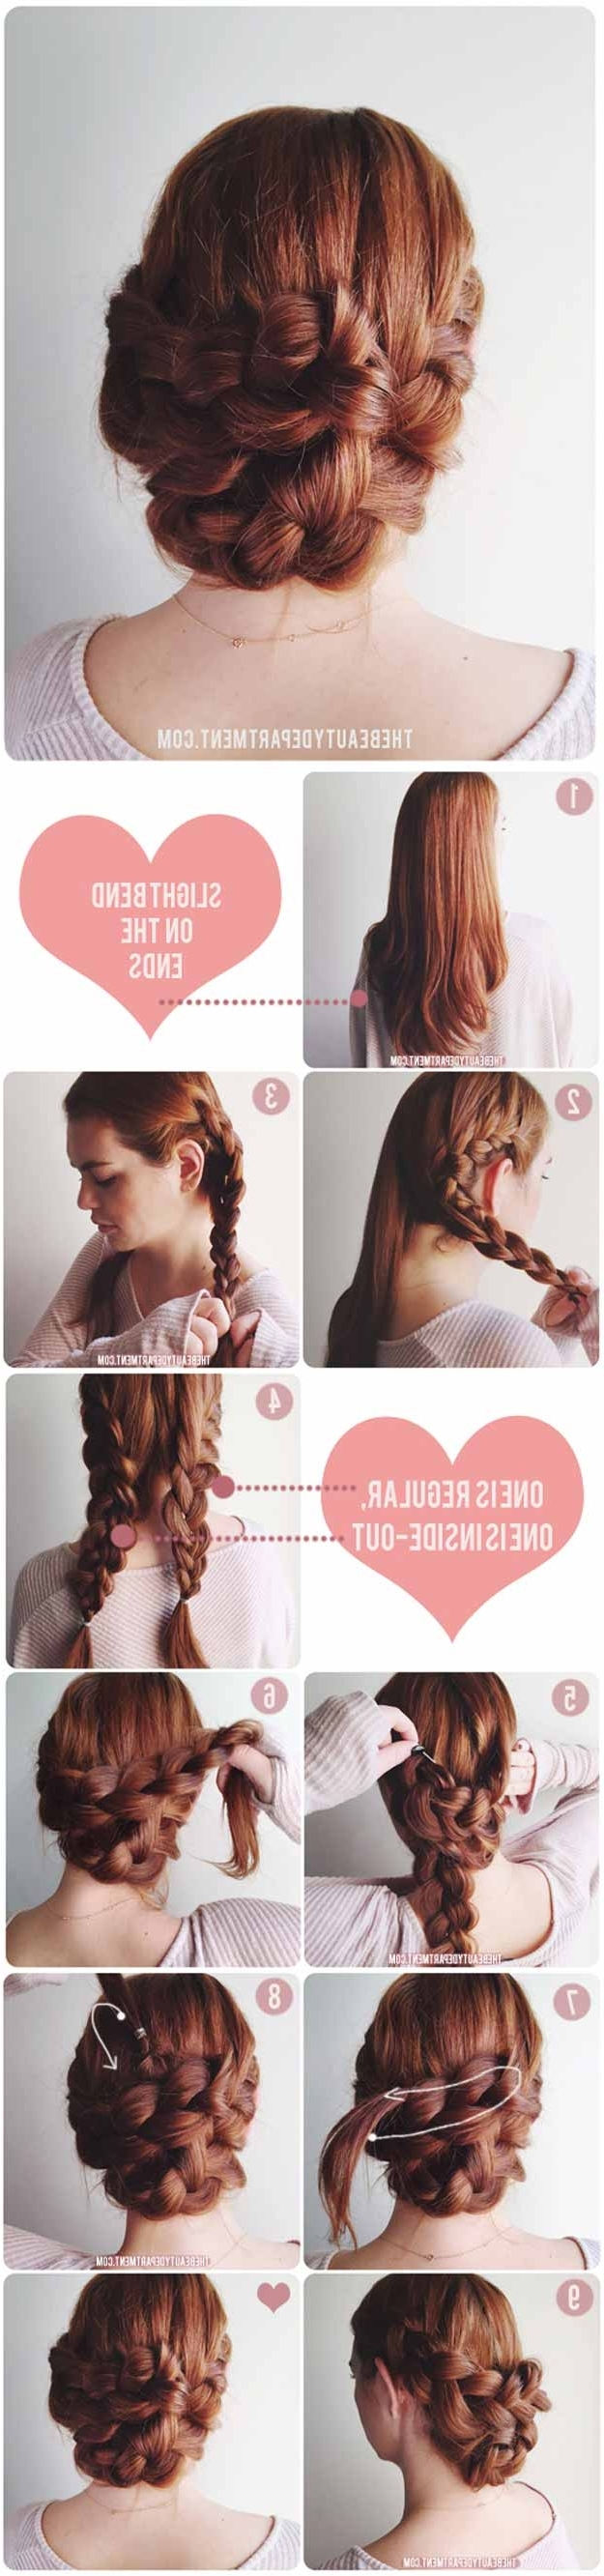 31 Wedding Hairstyles For Long Hair – The Goddess Intended For Widely Used Quick And Easy Wedding Hairstyles For Long Hair (View 10 of 15)